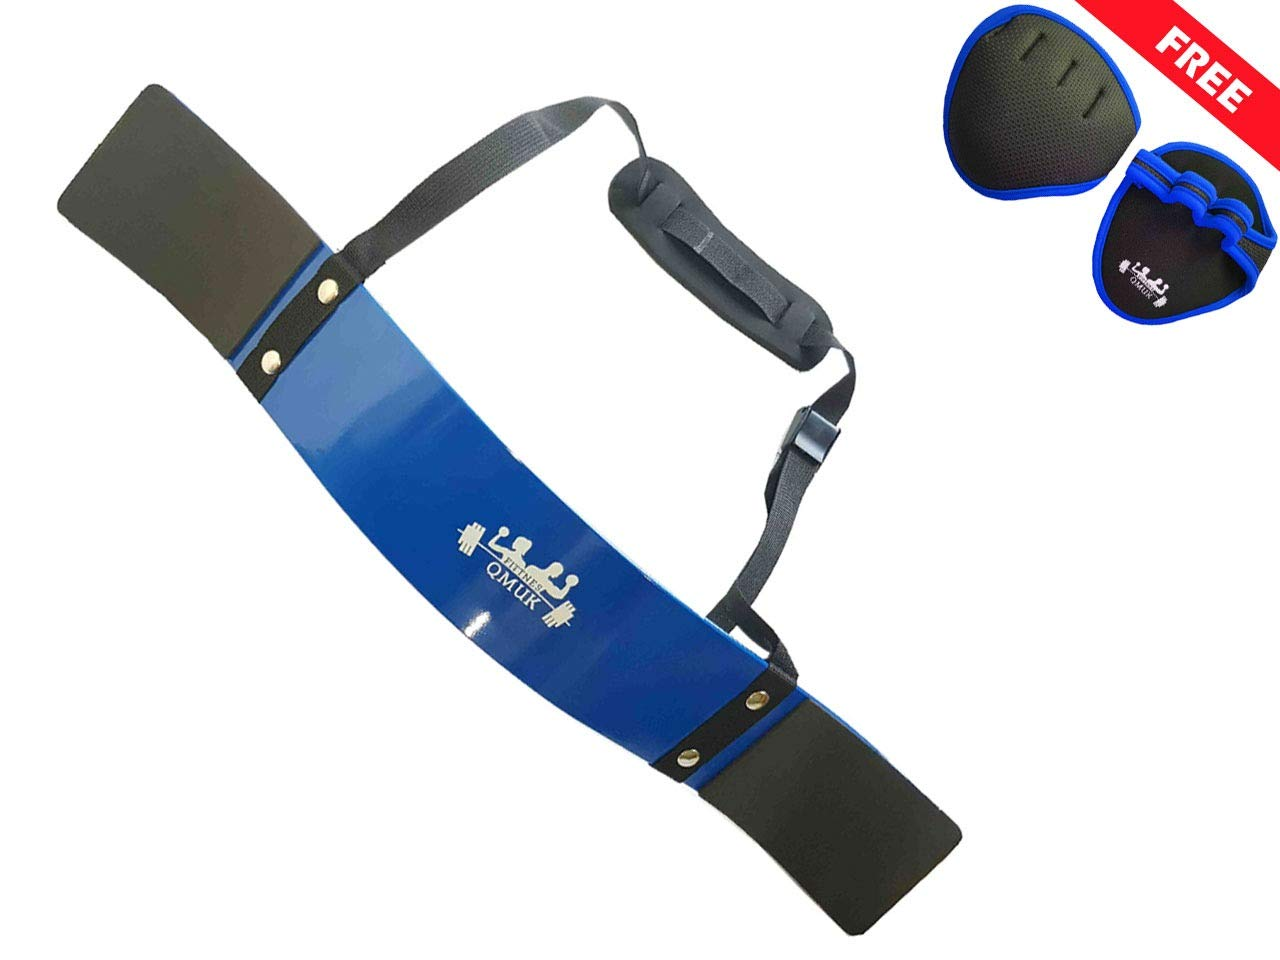 QMUK Arm Blaster for Bicep and Triceps Workout and Curel, Arm Muscle Strength, Bodybuilding & Weight Lifting Support with Neoprene Padding and Adjustable Strap for Safe Workout (Blue)